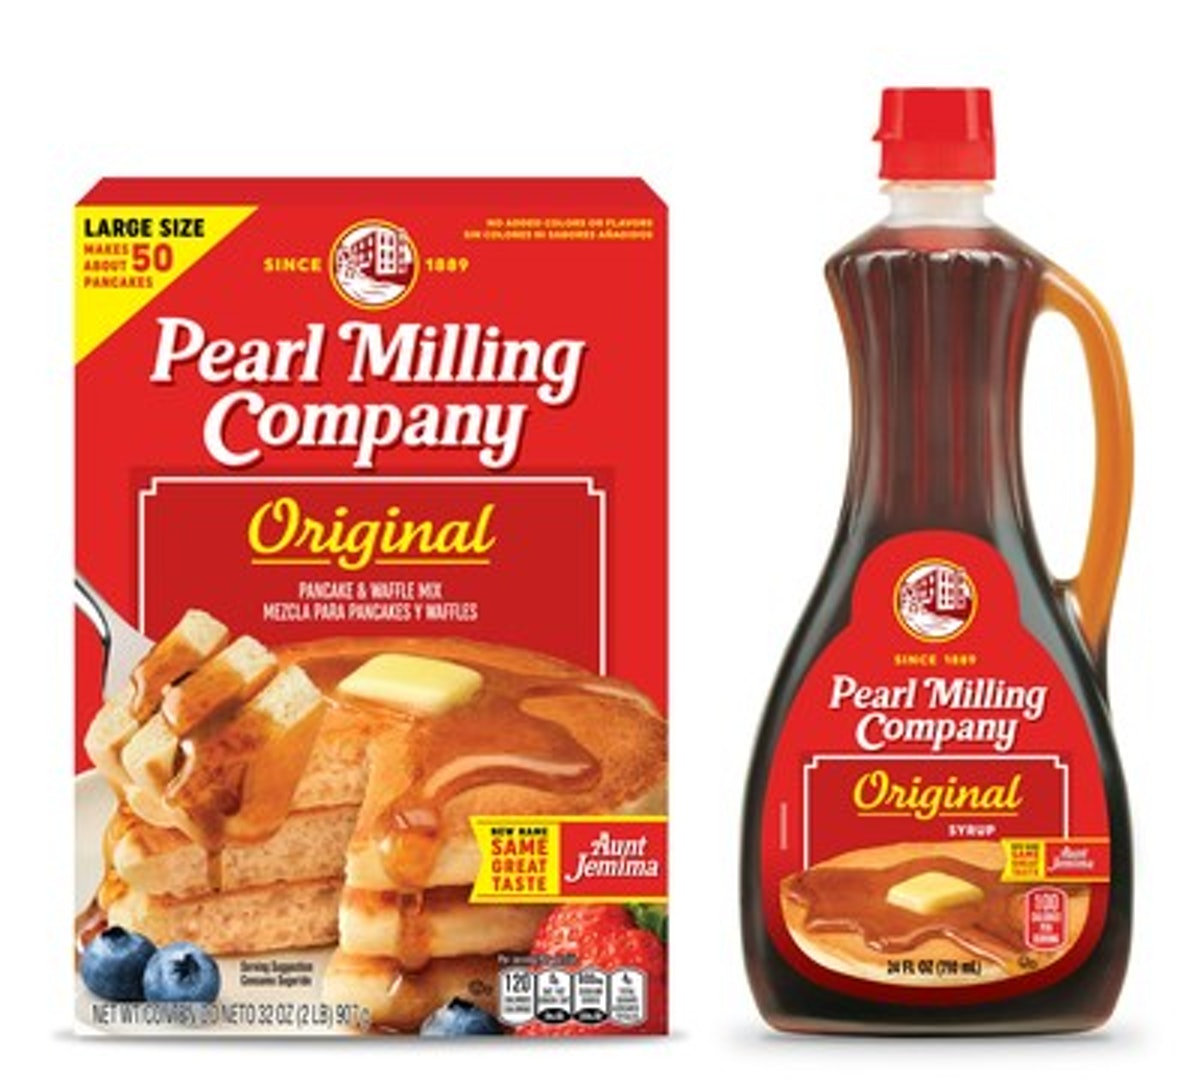 PepsiCo, parent company of Quaker, announced on Feb. 9 that it will rebrand Aunt Jemima to Pearl Milling Company in June 2021.